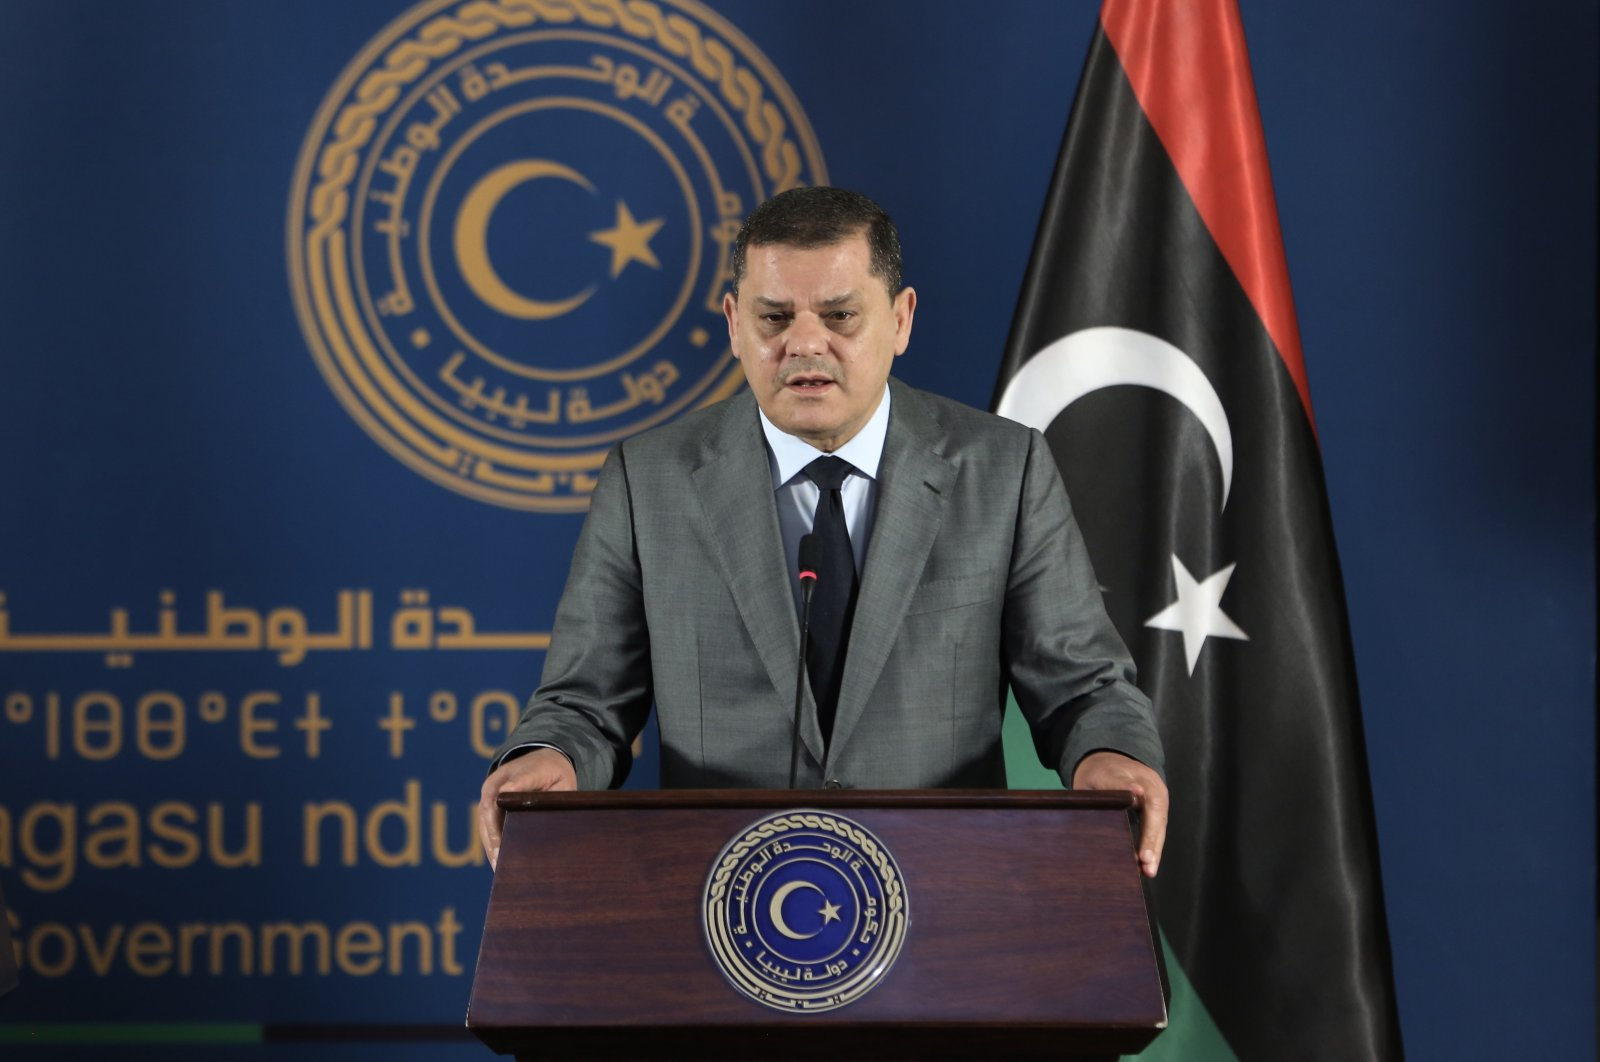 Libyan Prime Minister Abdul Hamid Mohammed Dbeibah speaks at a news conference in Tripoli, Libya, April 13, 2021. (AA File Photo)